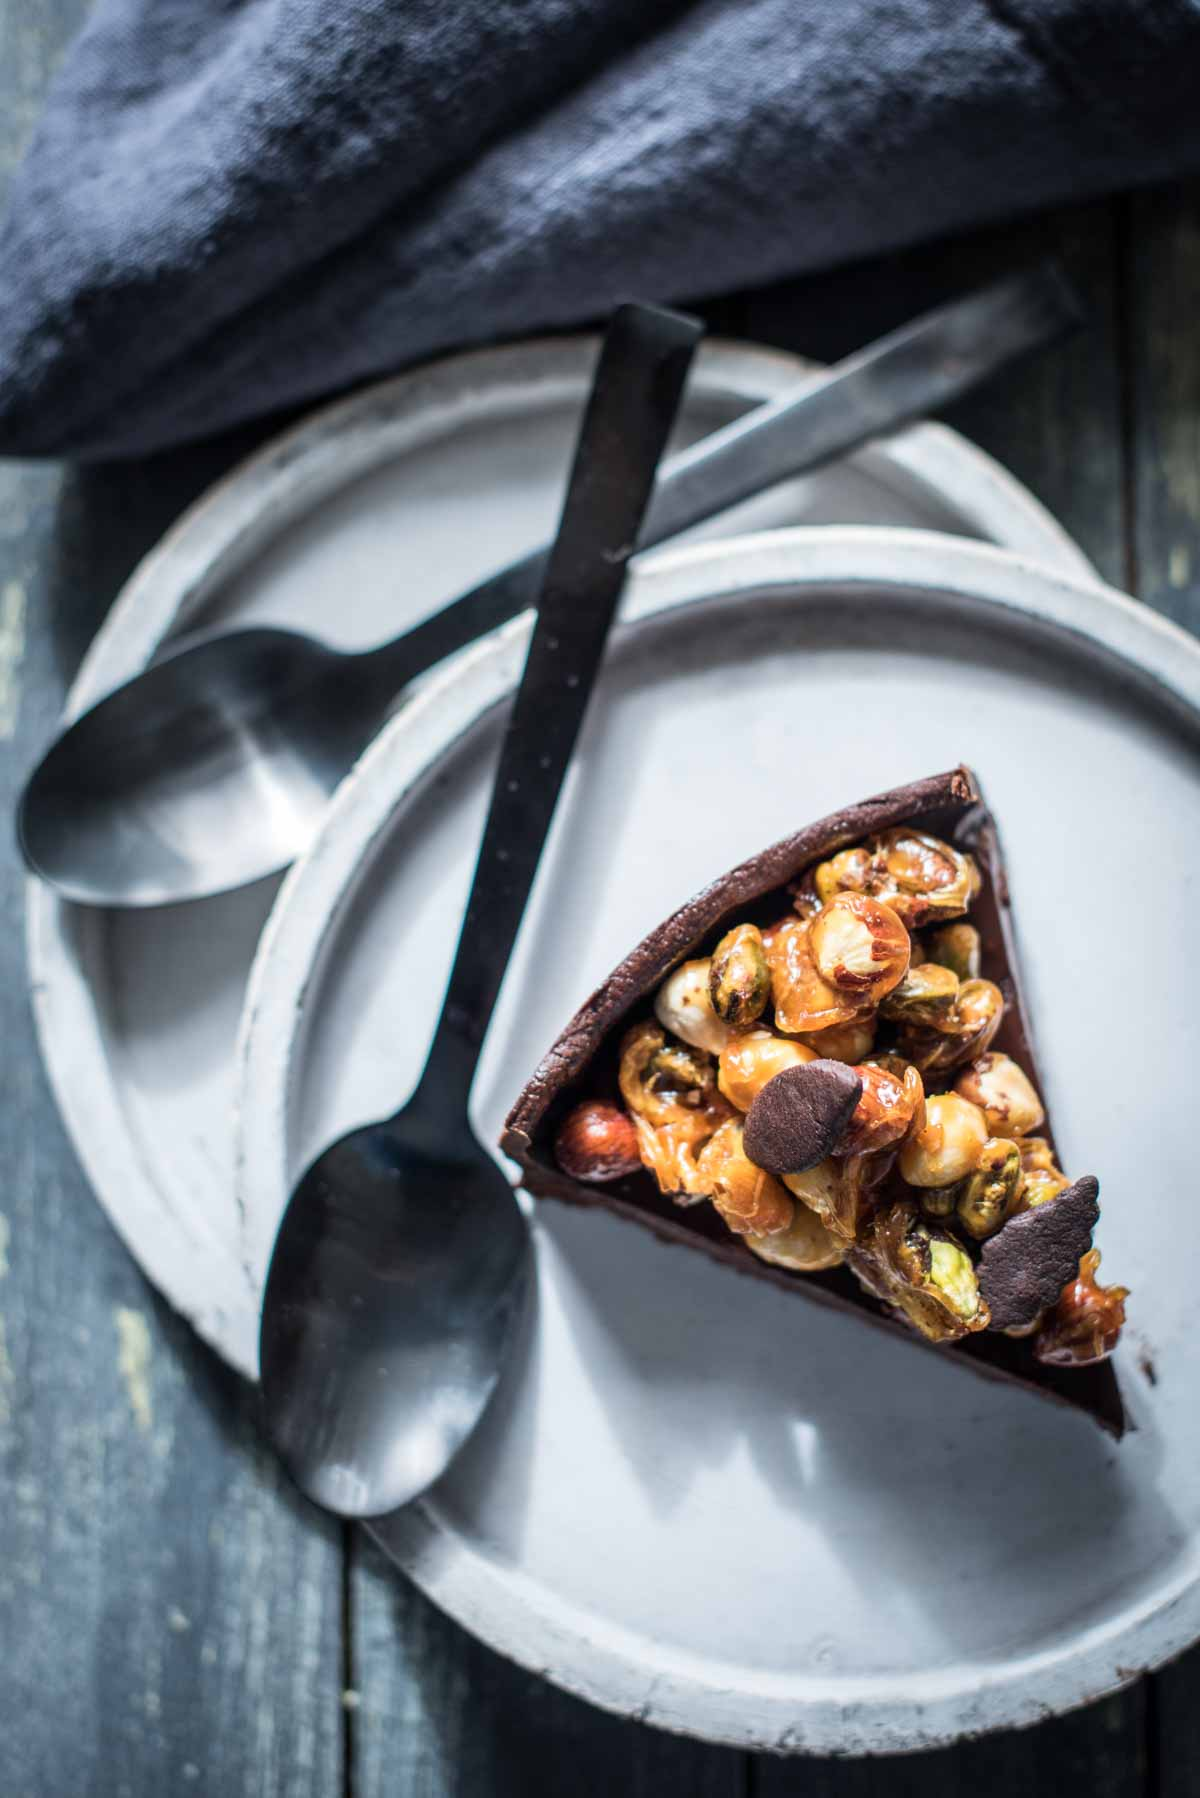 Hazelnut Pistachio Chocolate Ganache Tart | Chew Town Food Blog